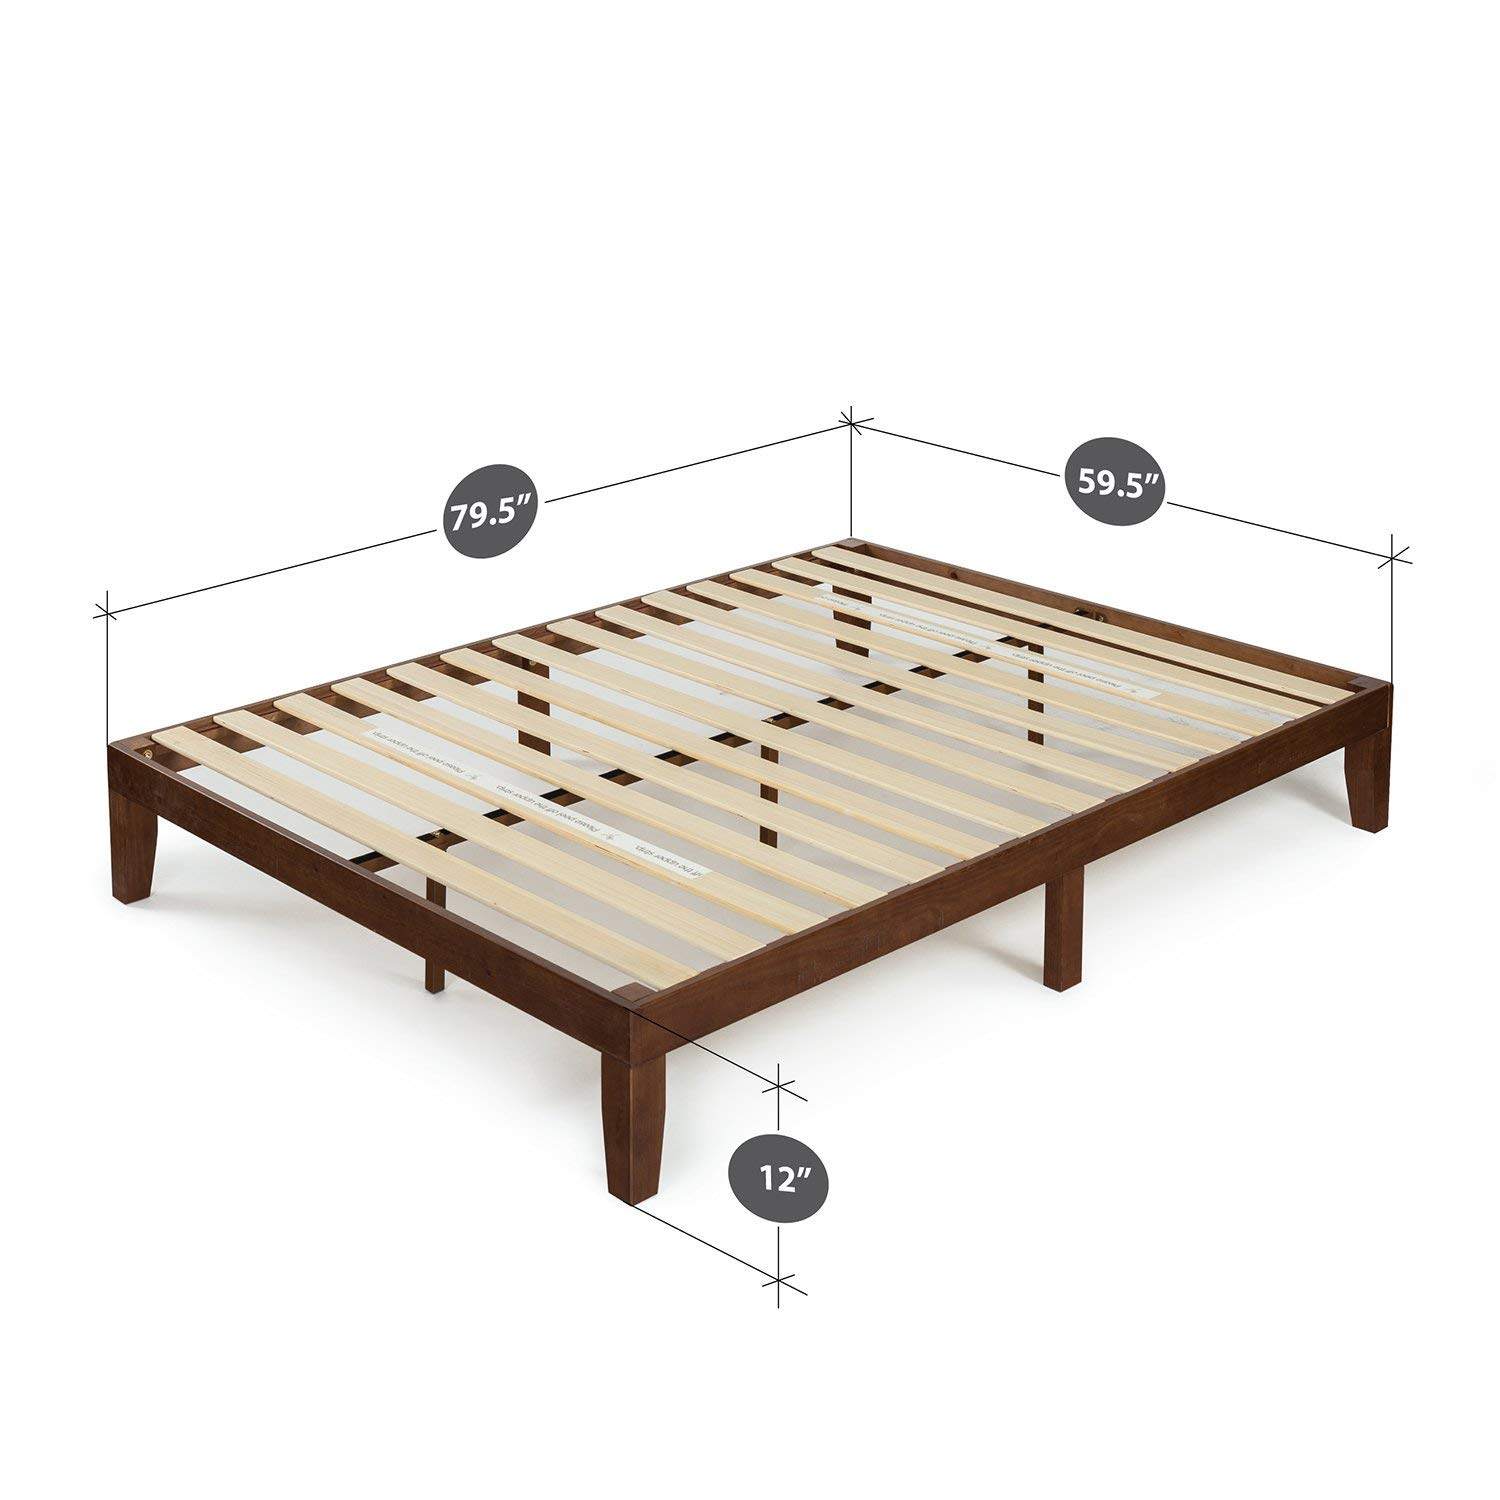 Zinus 12 Inch Wood Platform Bed features